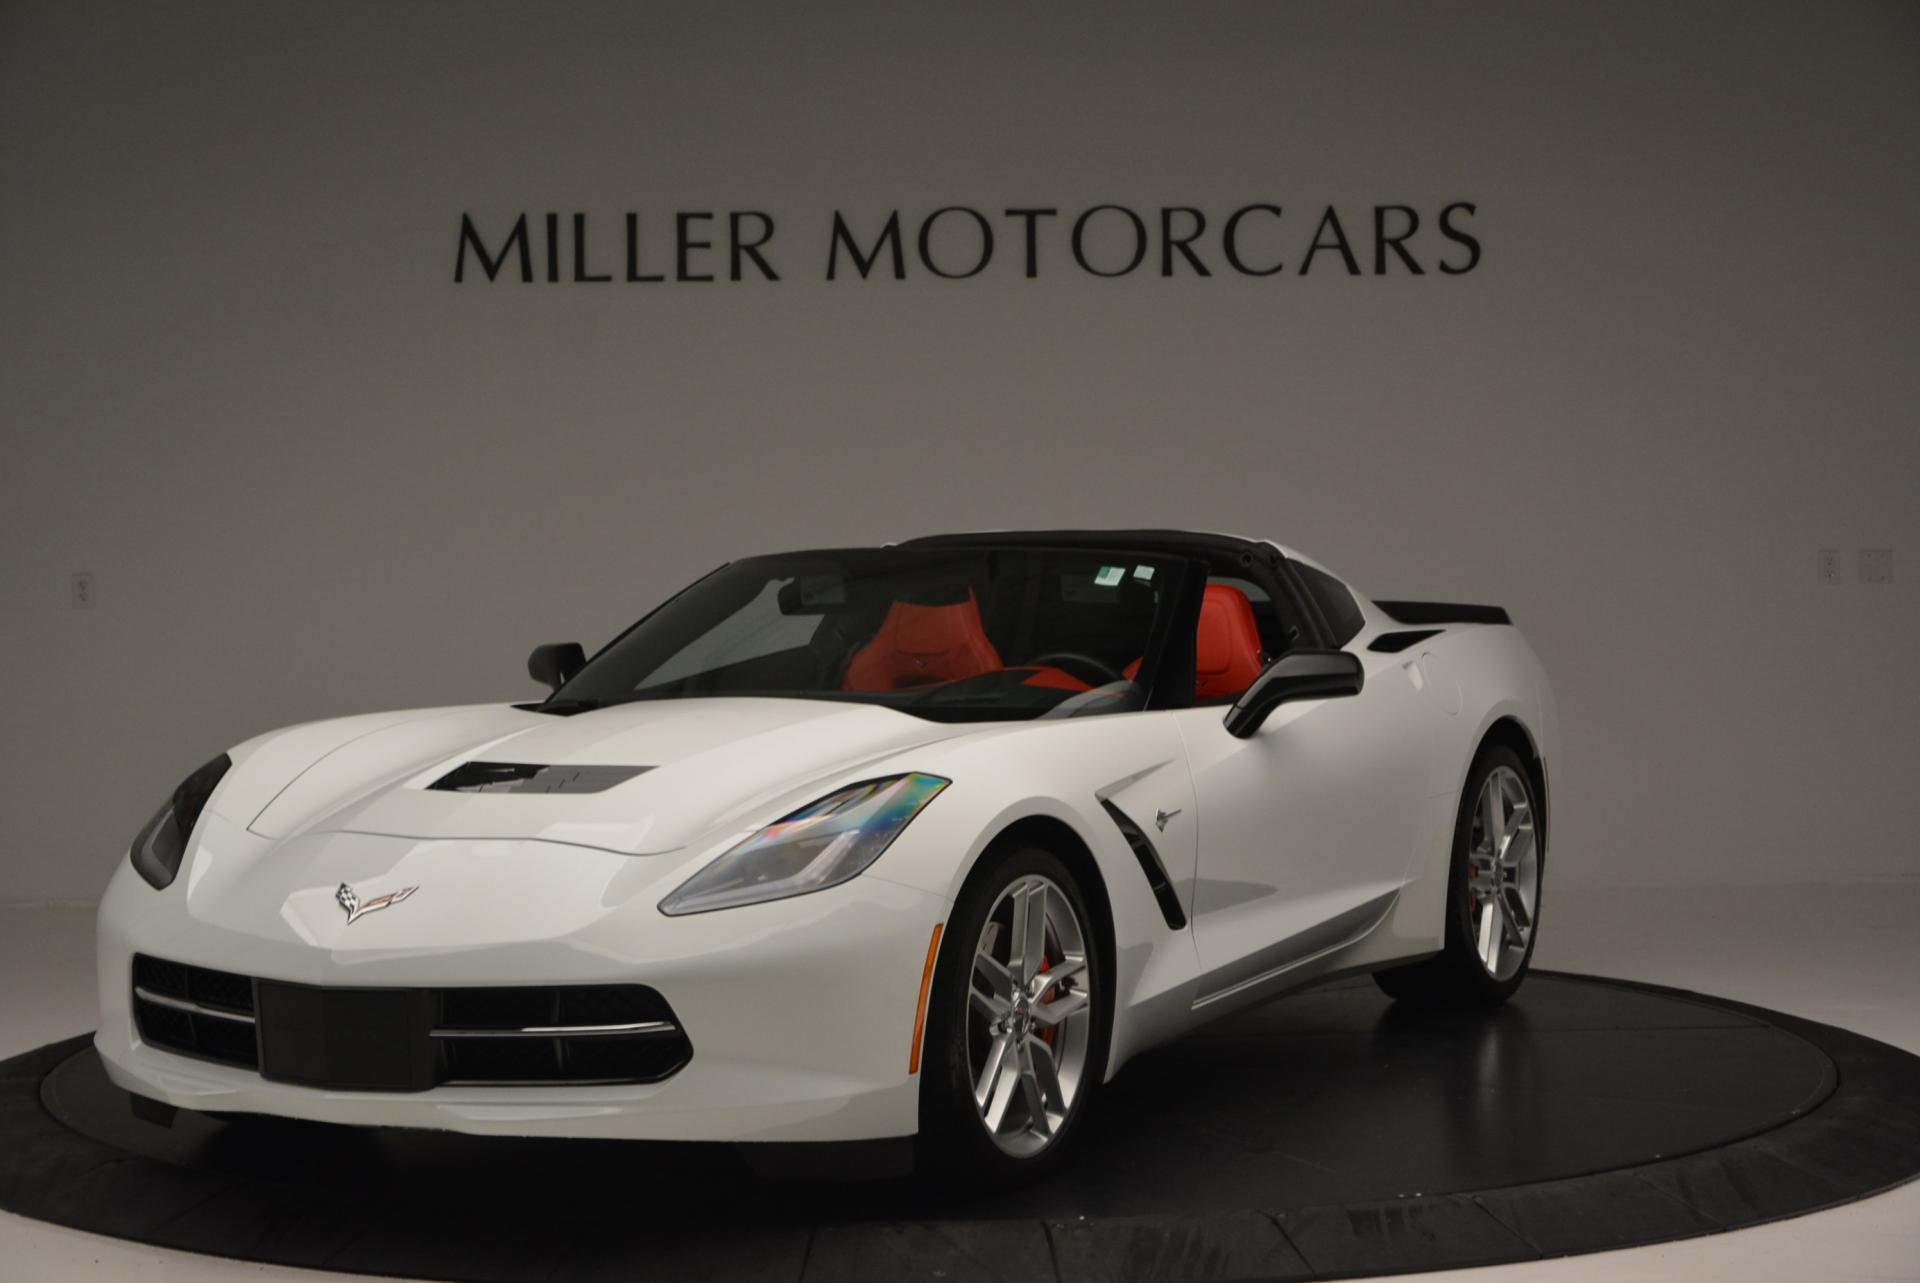 Used 2014 Chevrolet Corvette Stingray Z51 for sale Sold at McLaren Greenwich in Greenwich CT 06830 1